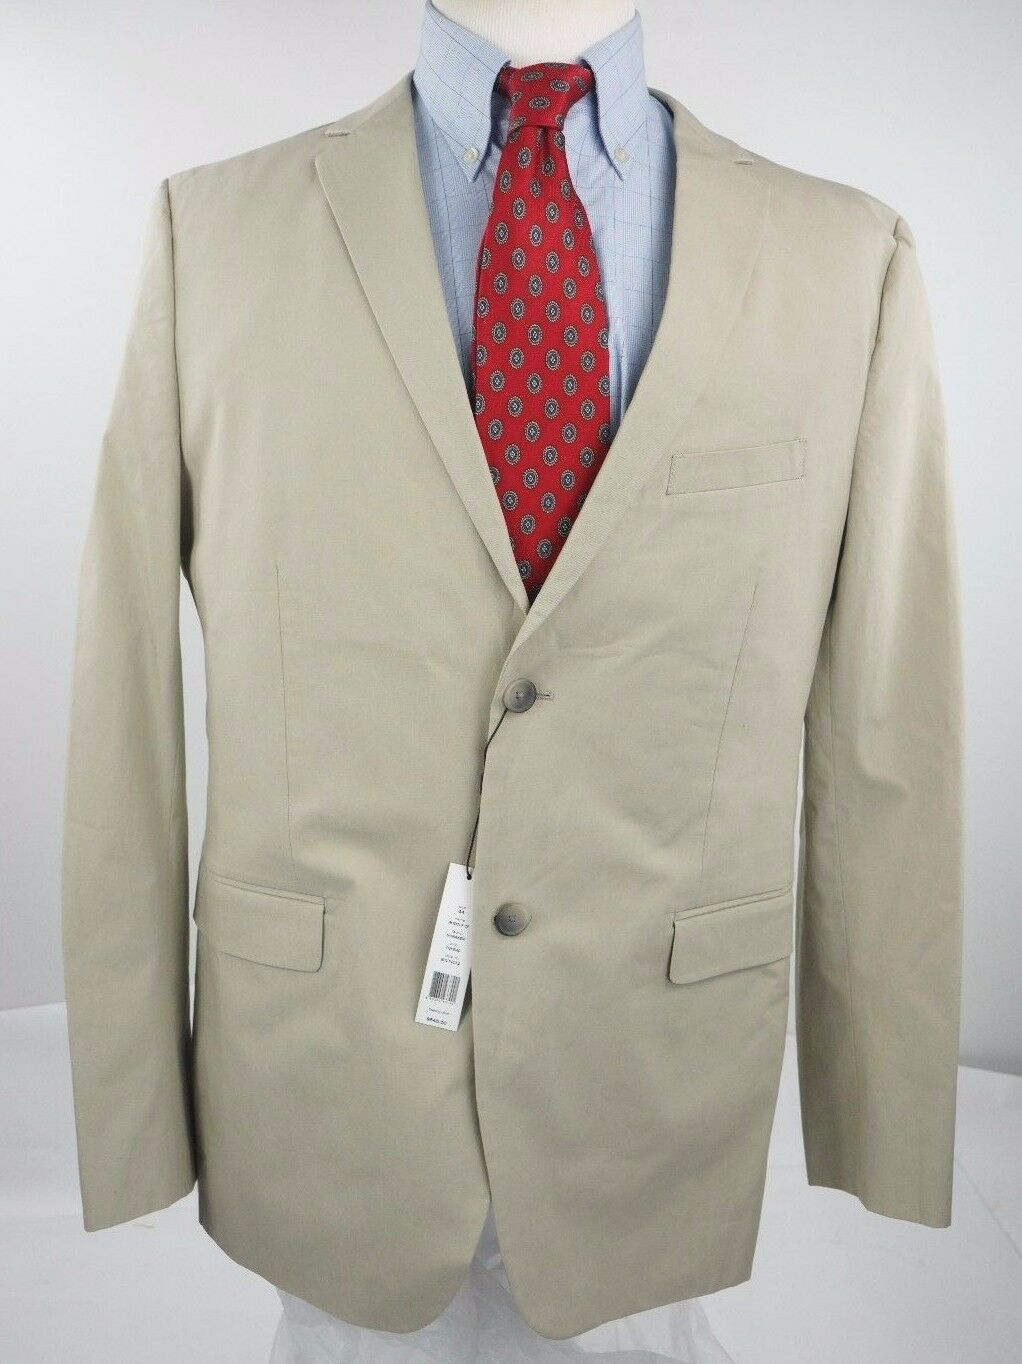 New with Tag Mens Theory Sport Coat Blazer Size 44 R Beige Cotton Blend